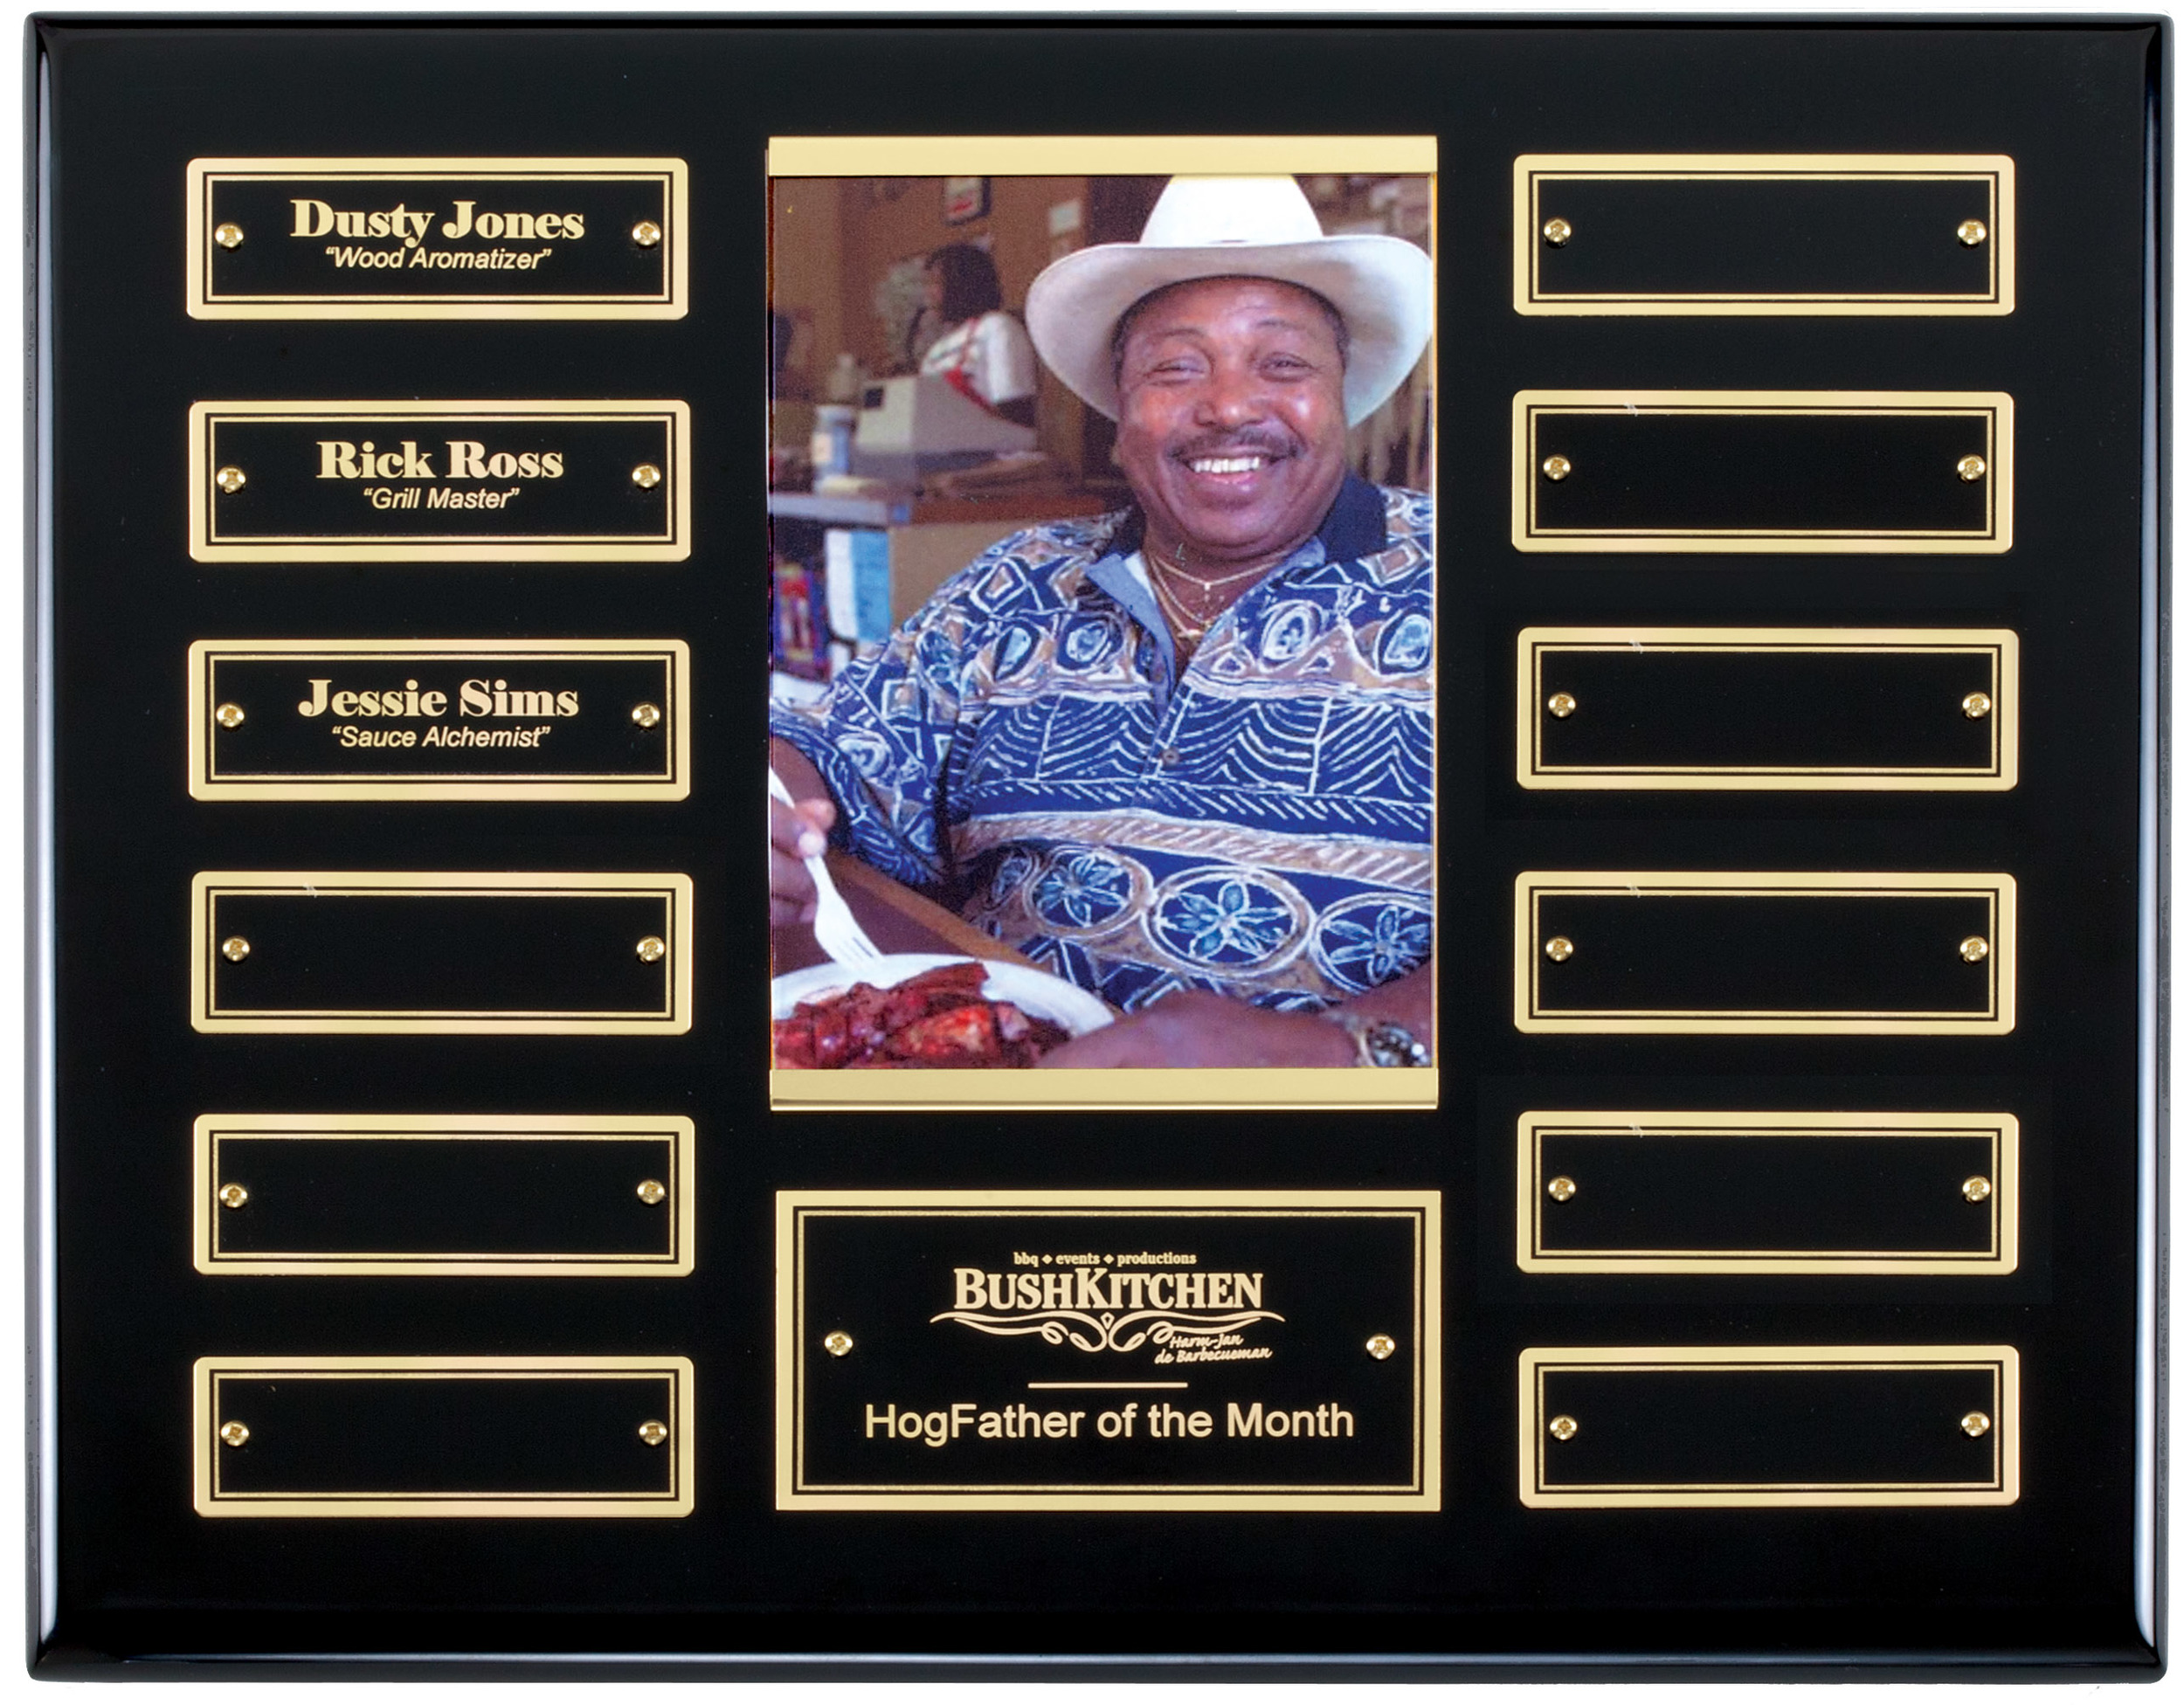 """Perpetual Plaque with Photo - APT515D-G   10.5"""""""" x 13"""" with 12 gold trim plates (1"""" x 3"""") - Ebony Piano Finish   Price = $135  (Includes engraving on title plate and one name plate)"""